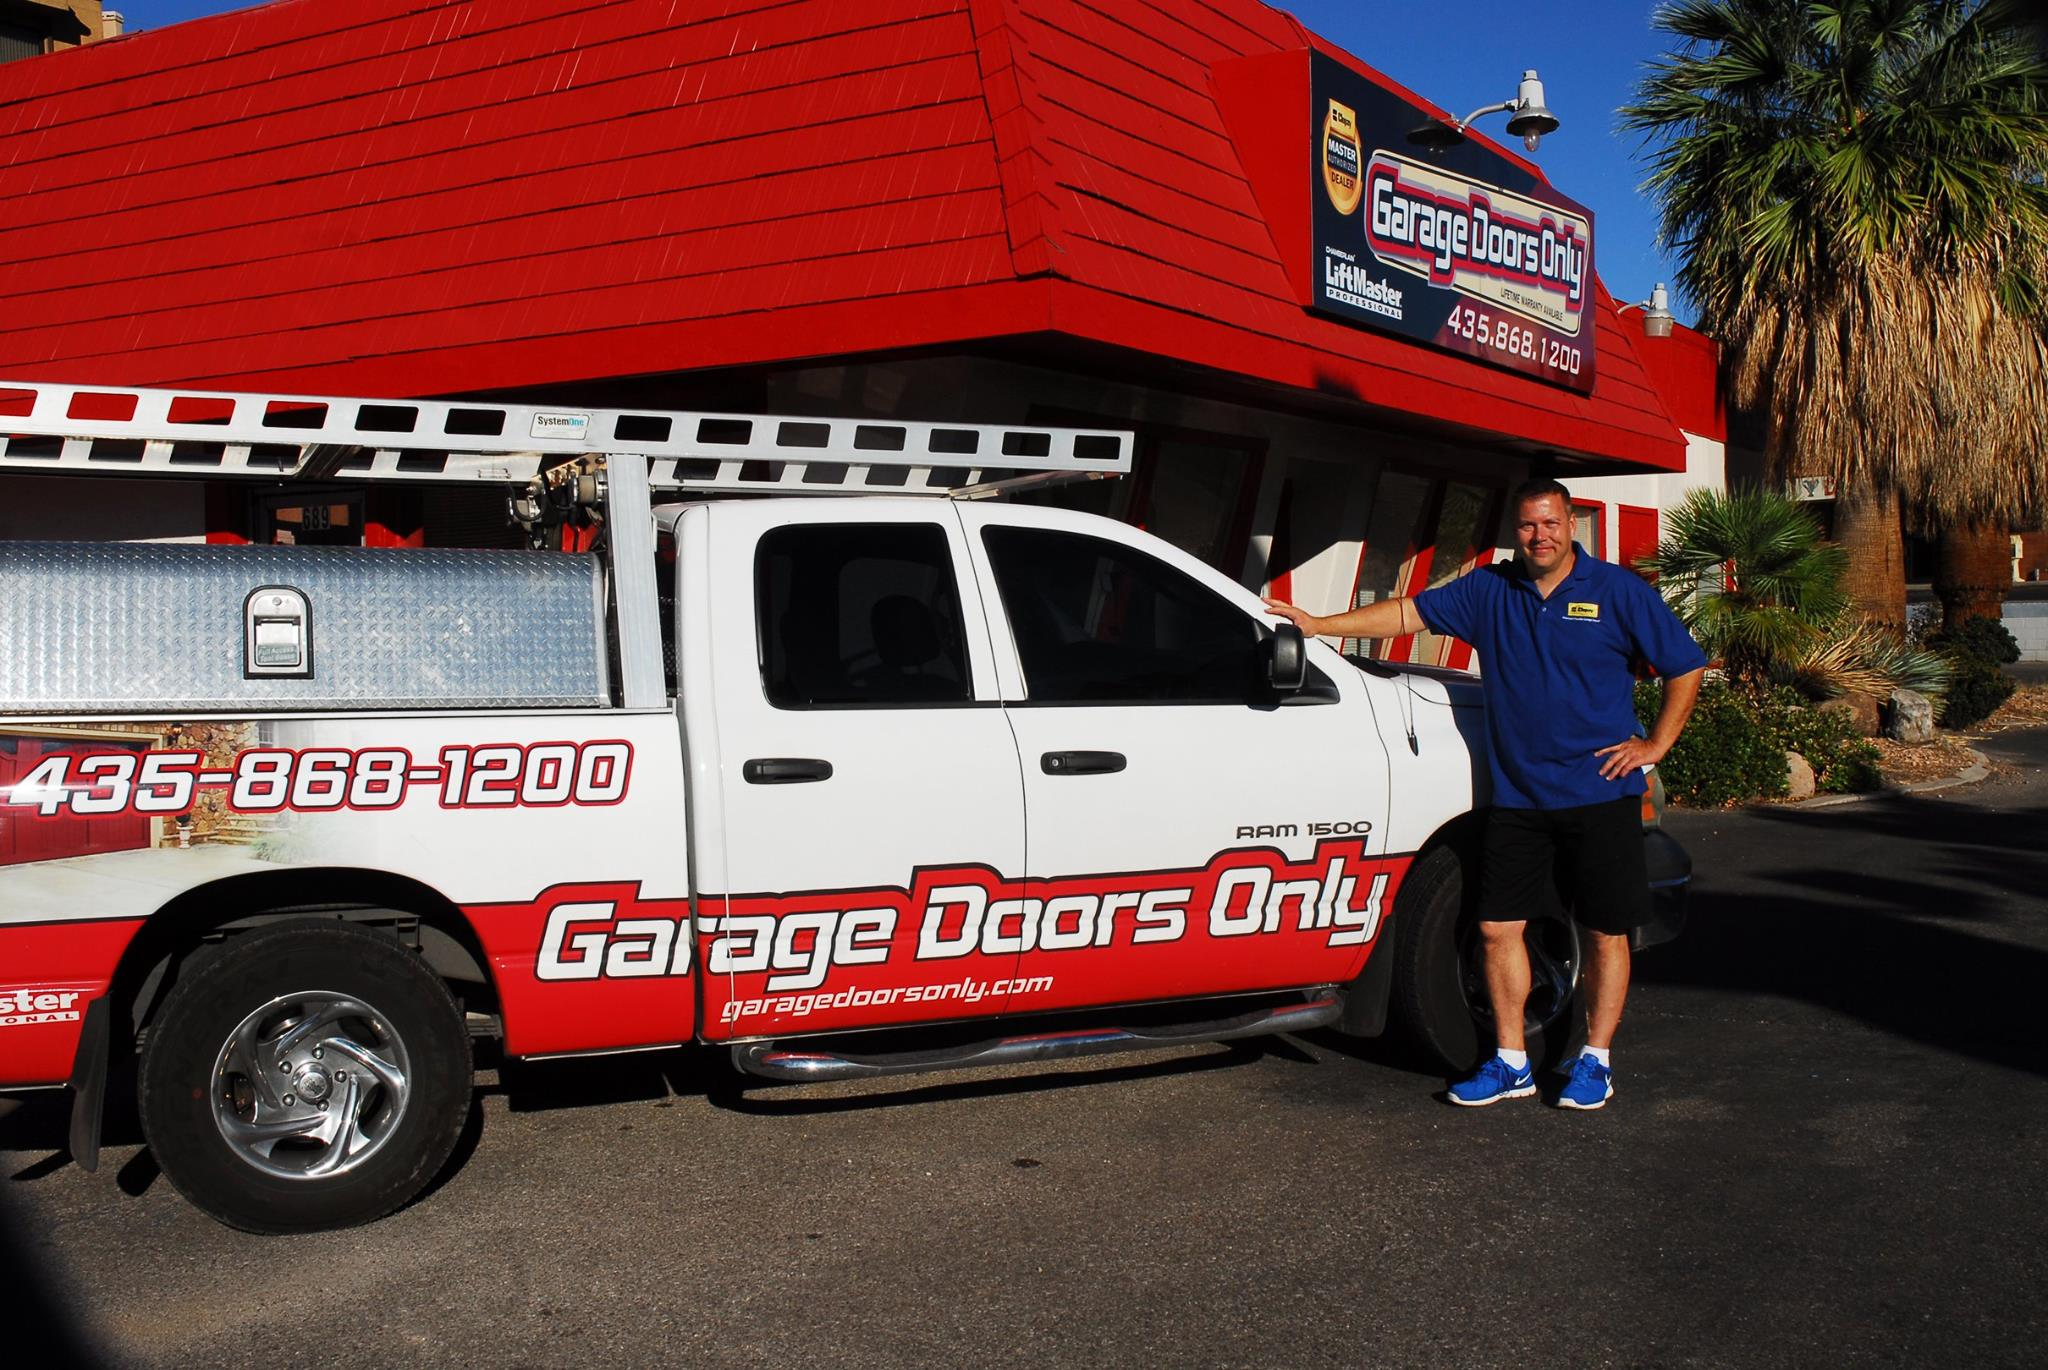 Garage Doors Only  St George  Payson Utah  Fast service Fair prices Serving Utah since 1999